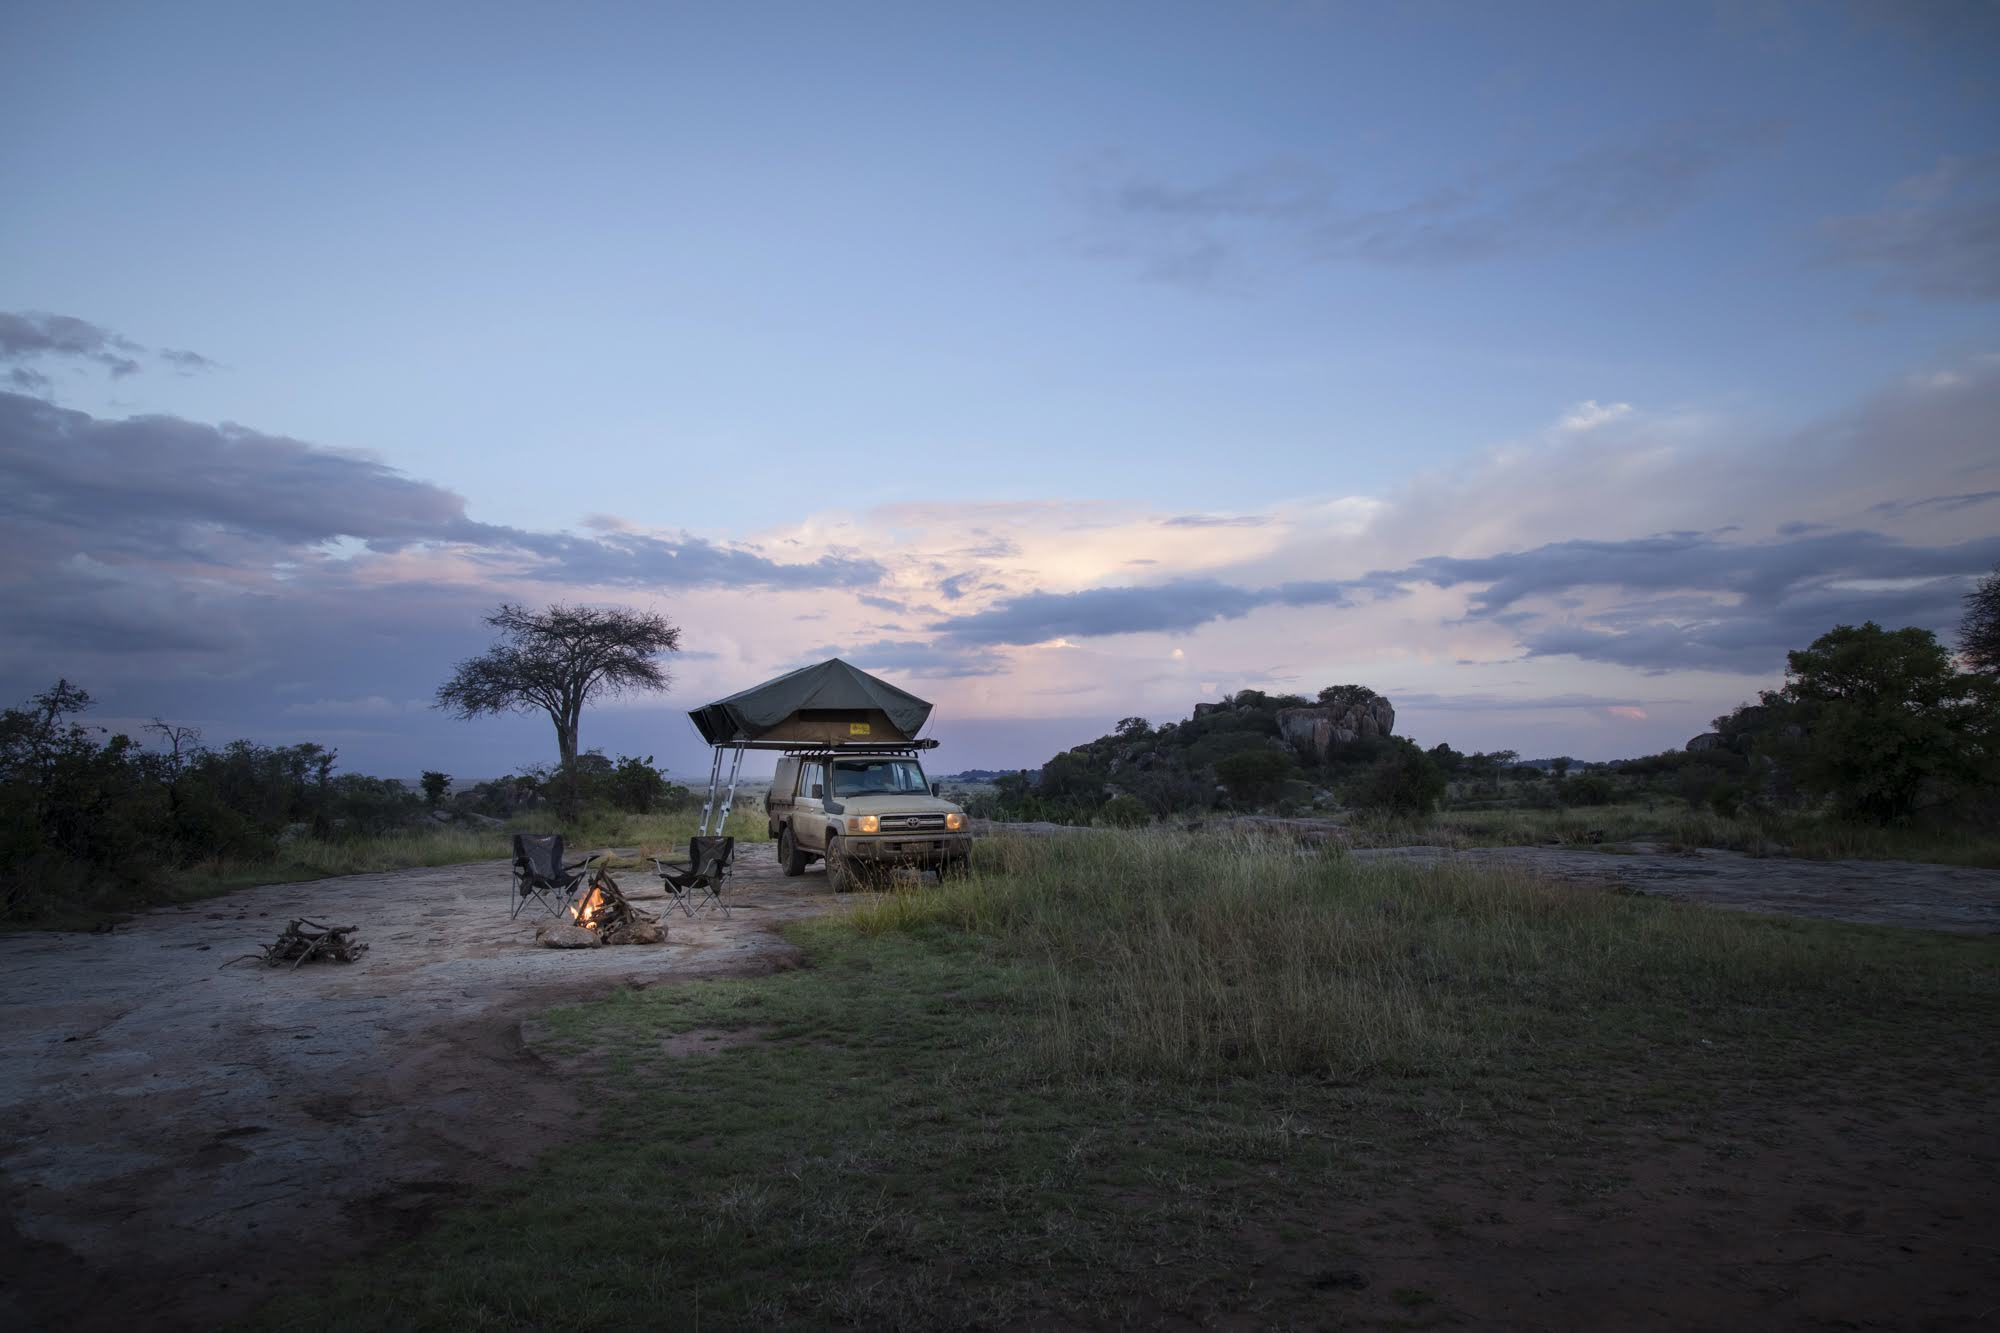 Safari Drive Land Cruiser with rooft tent and campfire in Botswana after sunset